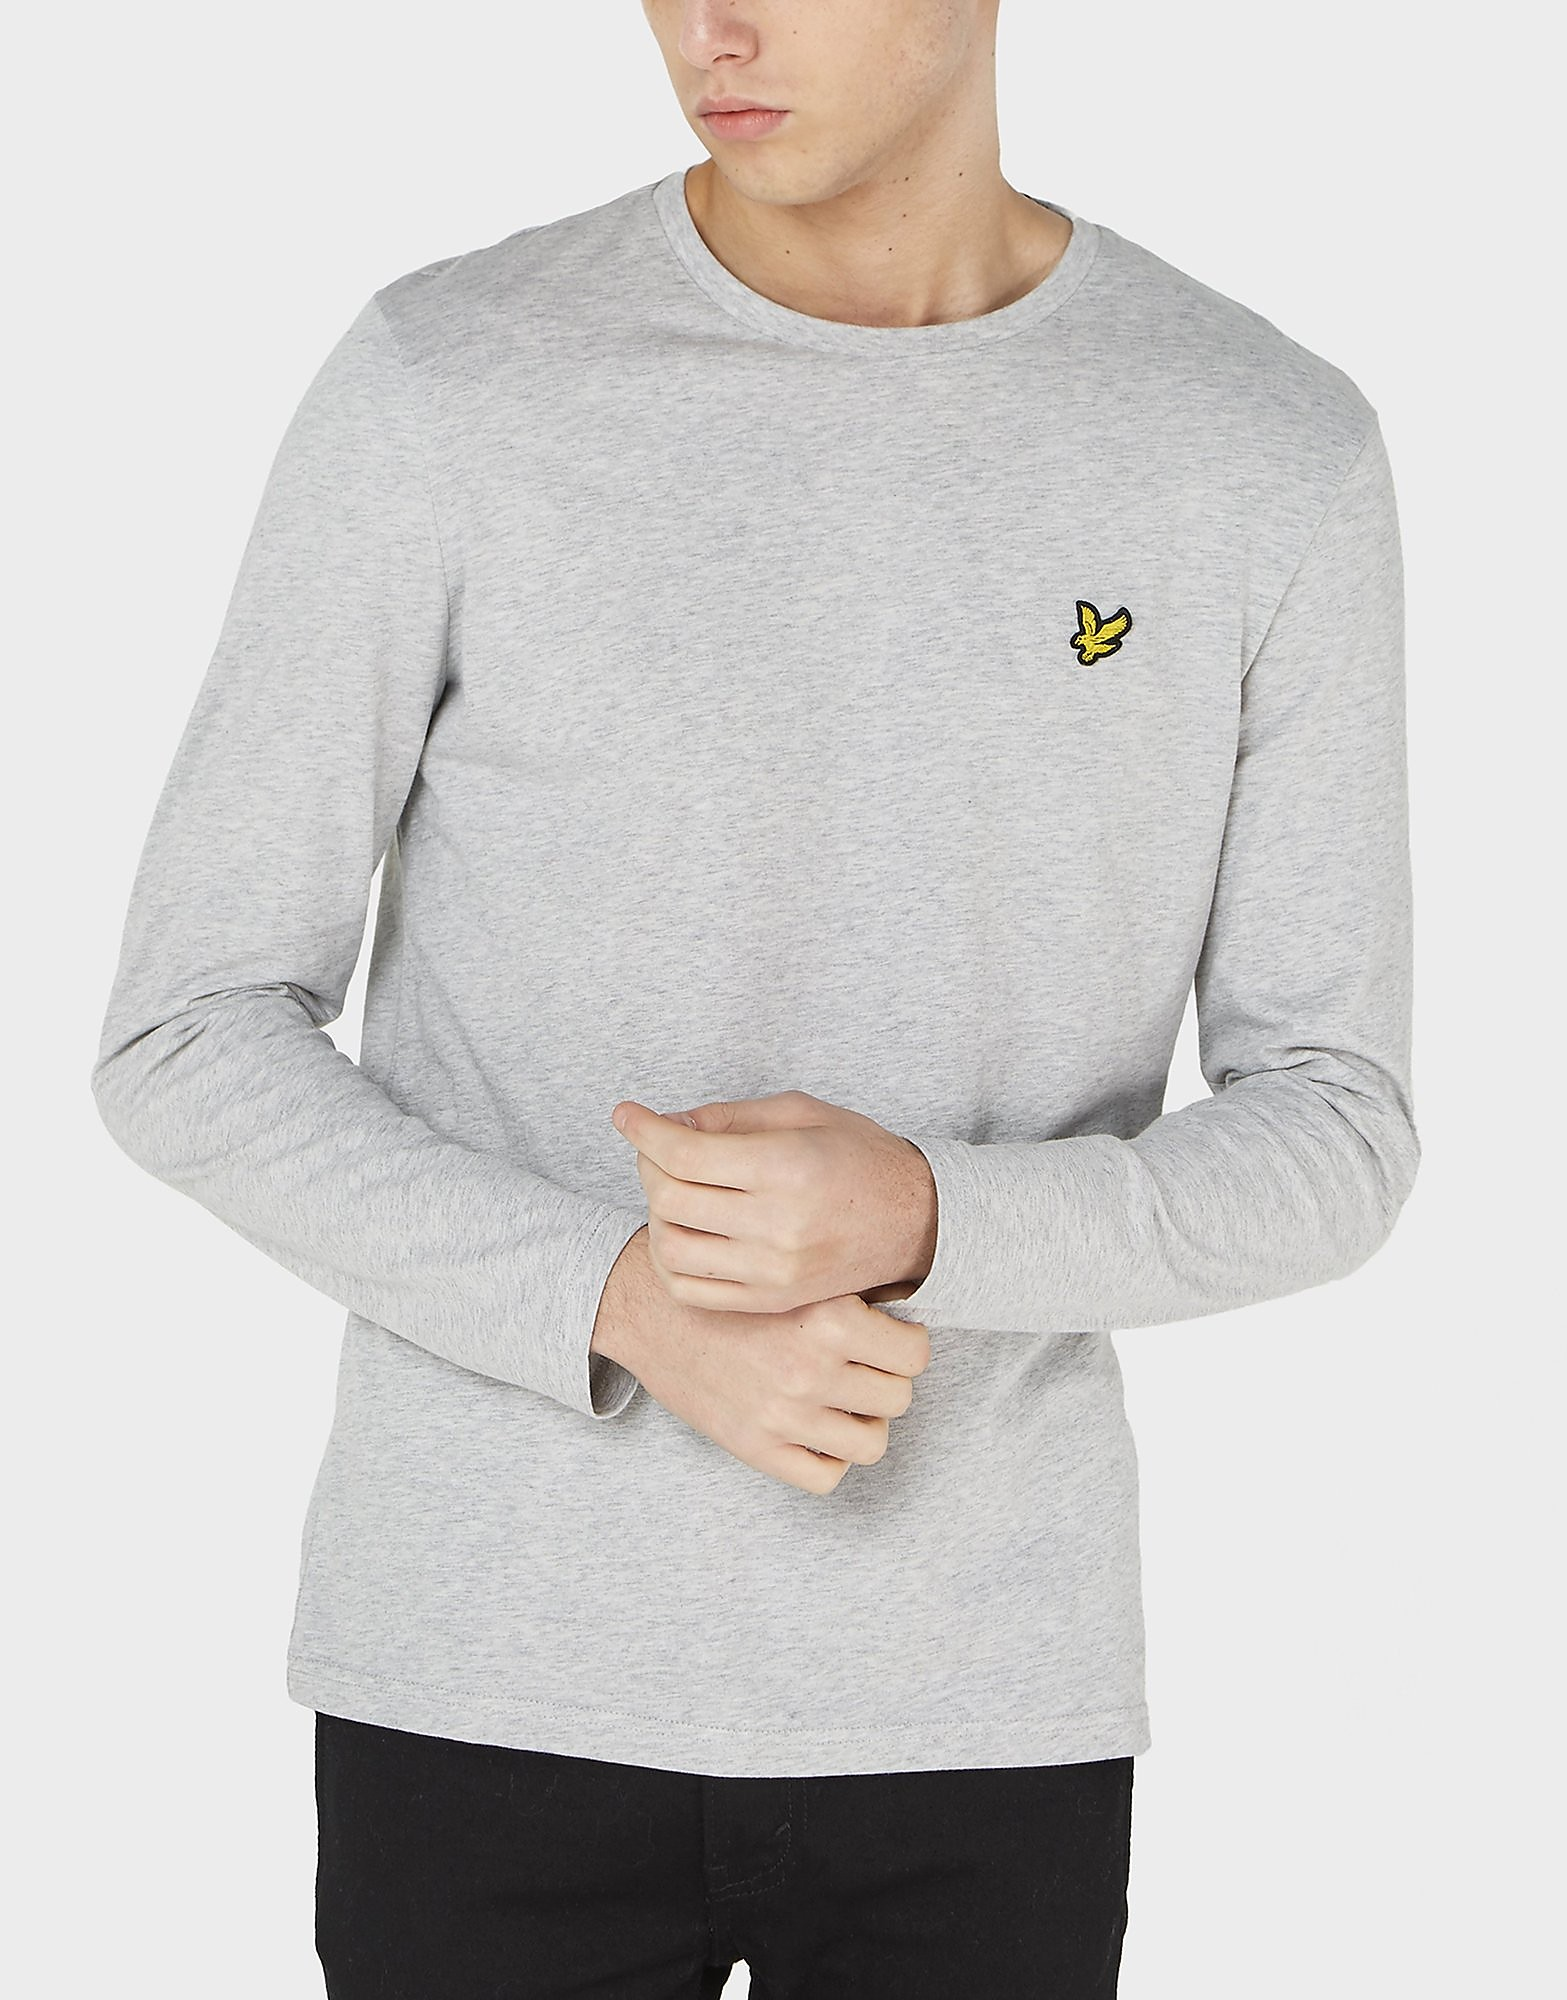 Lyle & Scott Long Sleeve Crew Neck T-Shirt